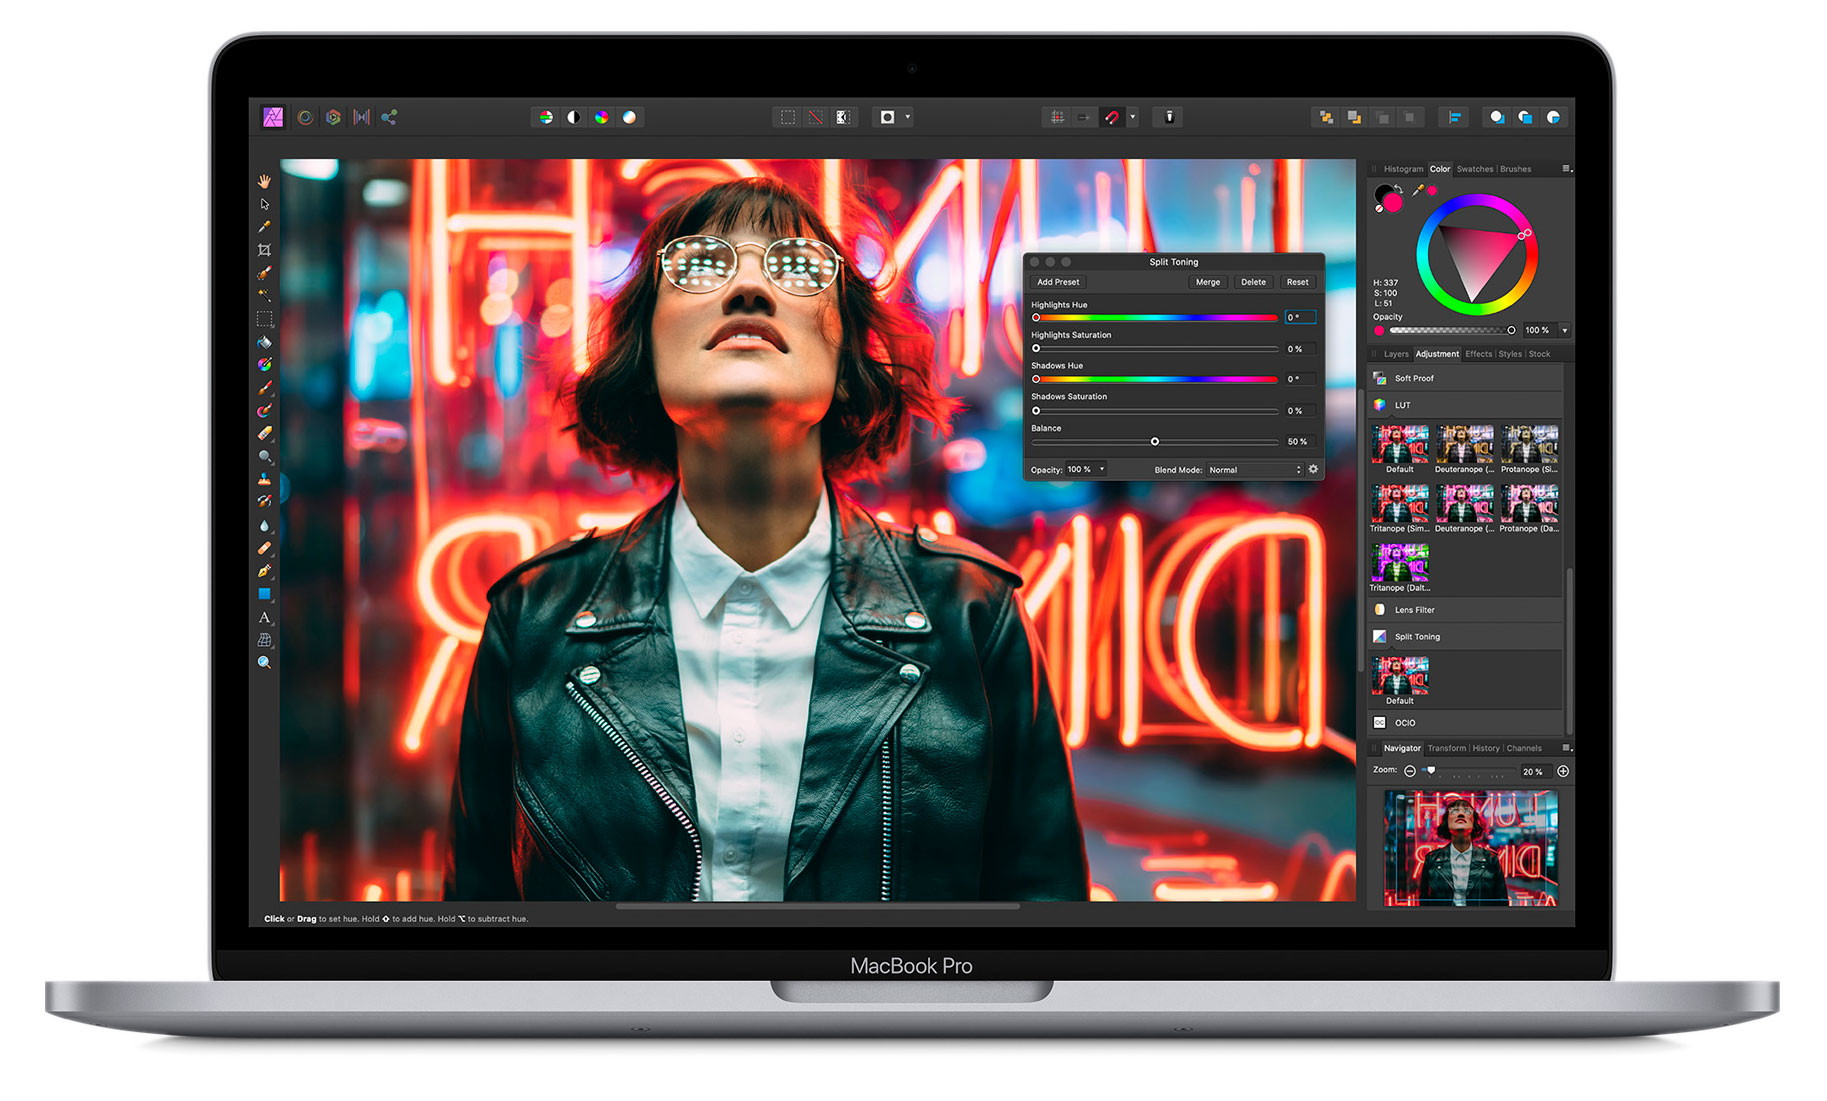 https://www.macfreak.nl/modules/news/images/zArt.13-inchMacBookPro2020AffinityPhoto.jpg